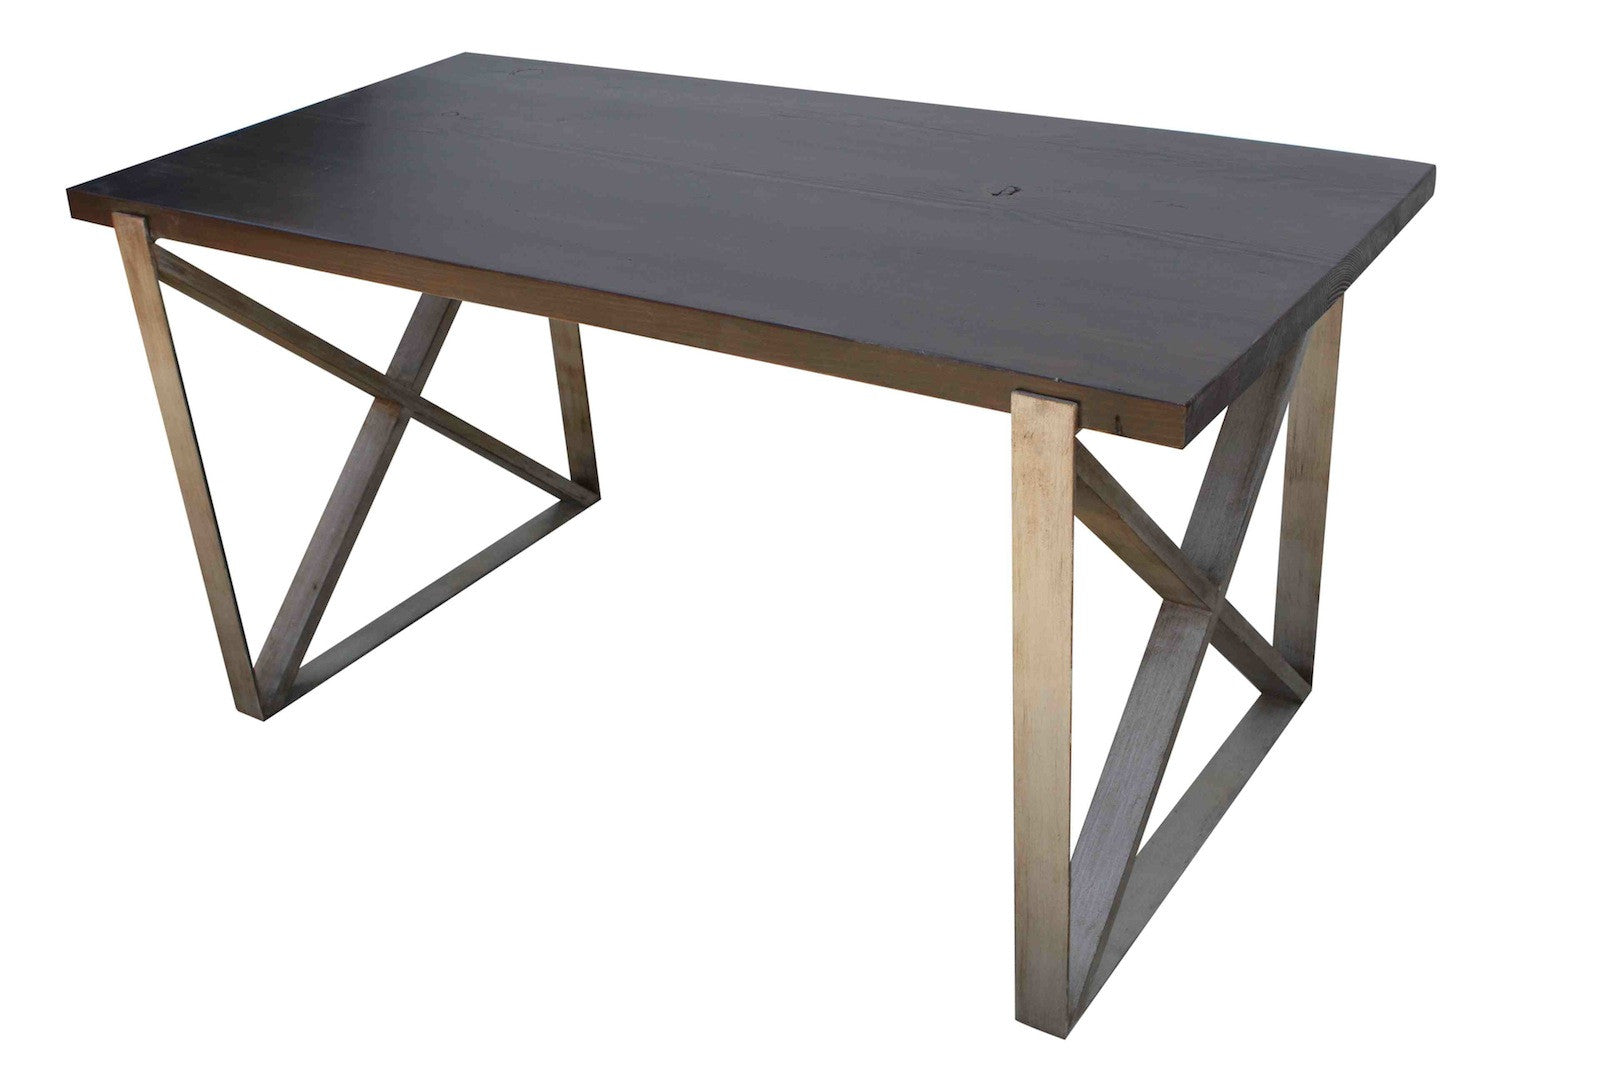 ... Chicago Industrial Dining Table In Reclaimed Wood ...